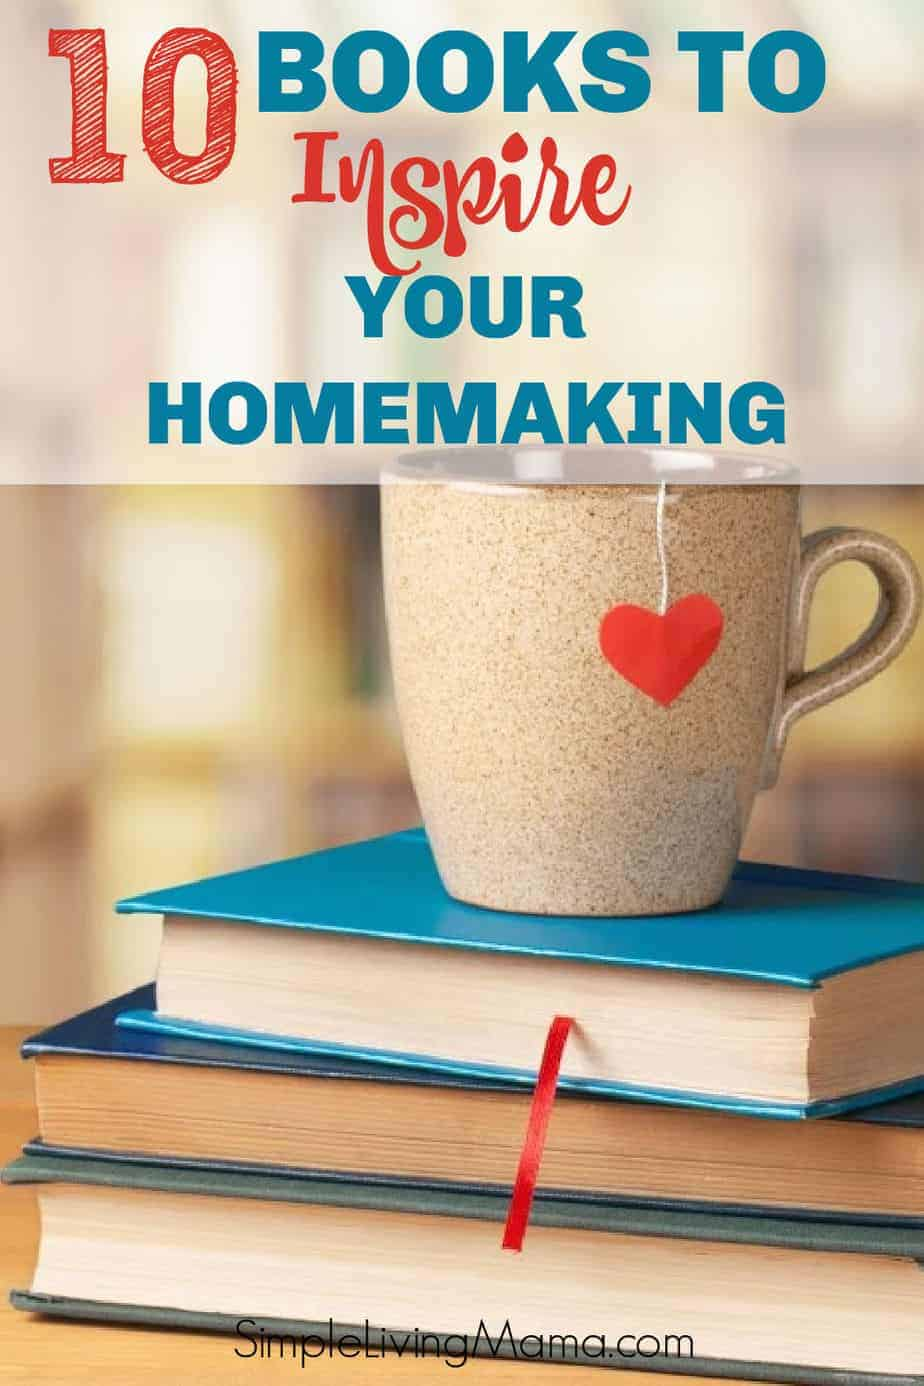 10 Books every Homemaker Should Read